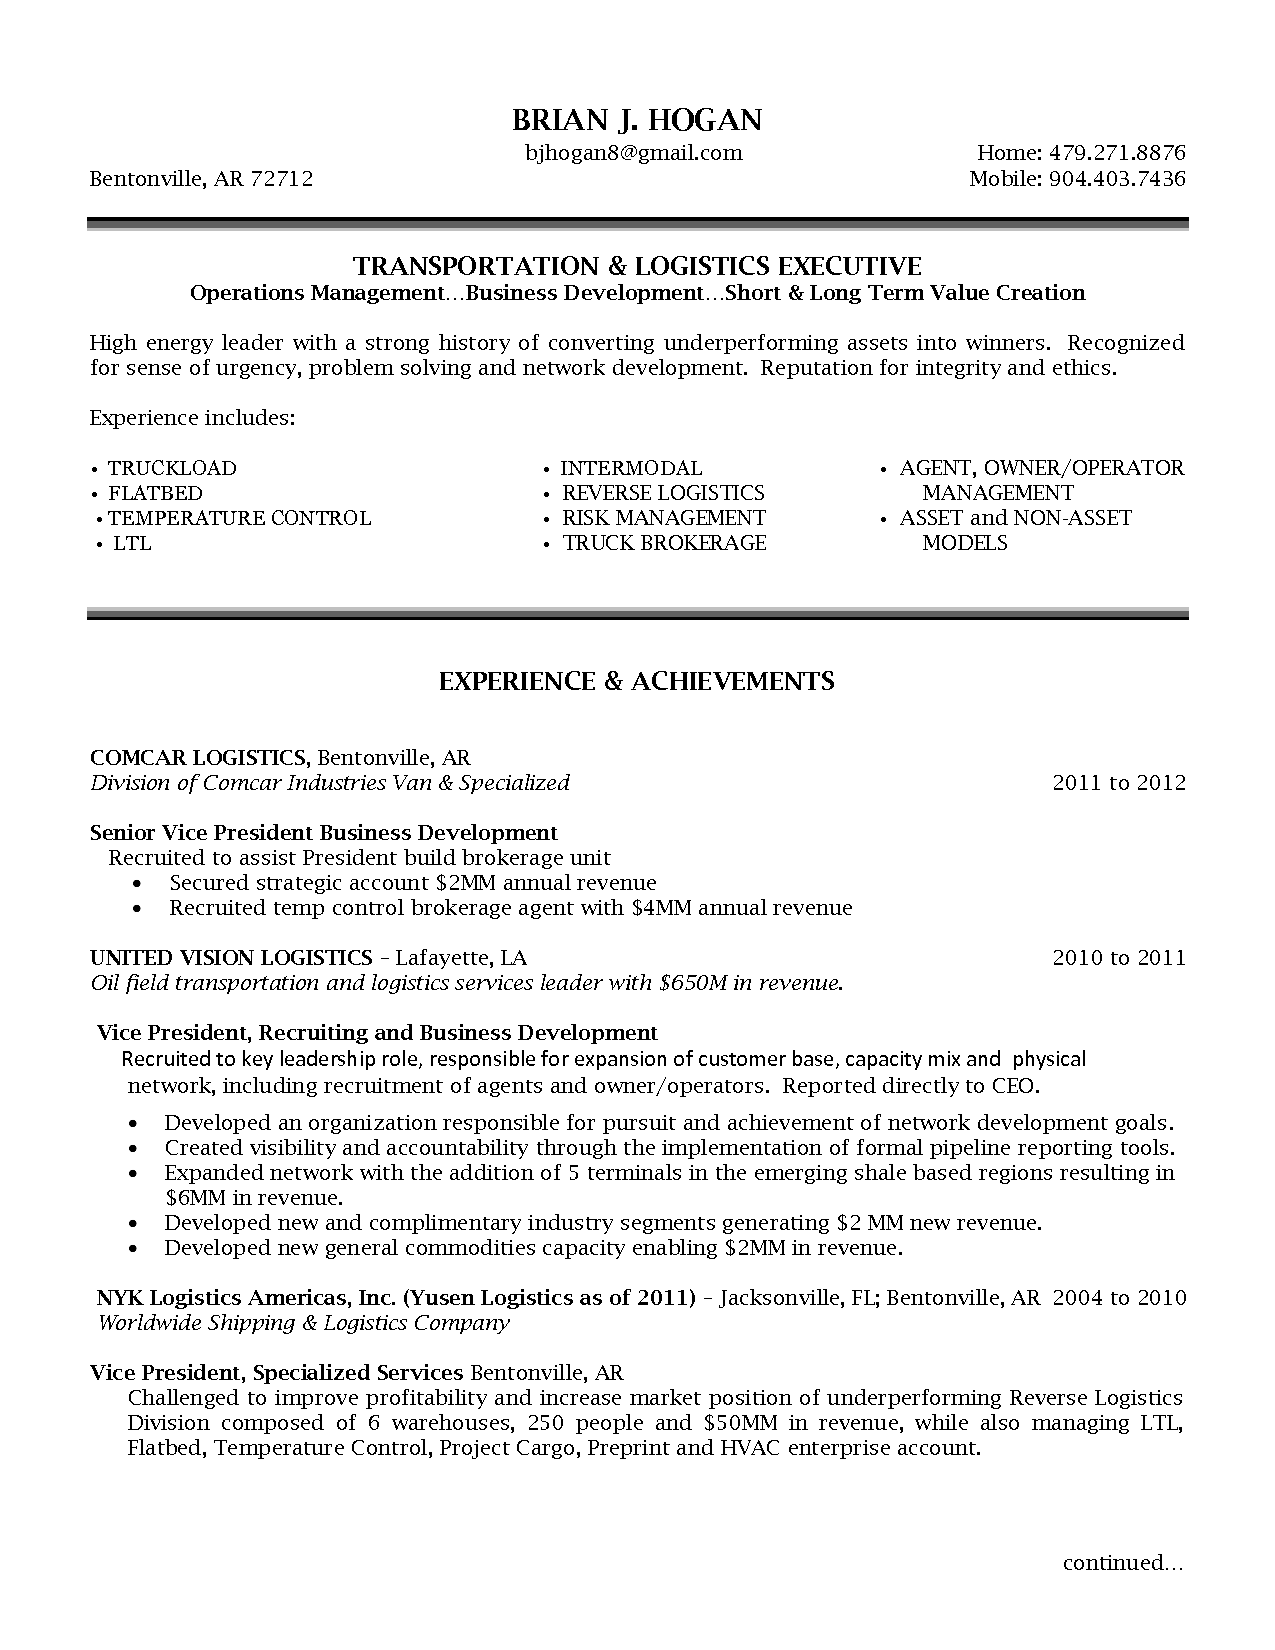 Supply Chain Manager Resume Senior Logistic Management Resume  Vp Director Operations